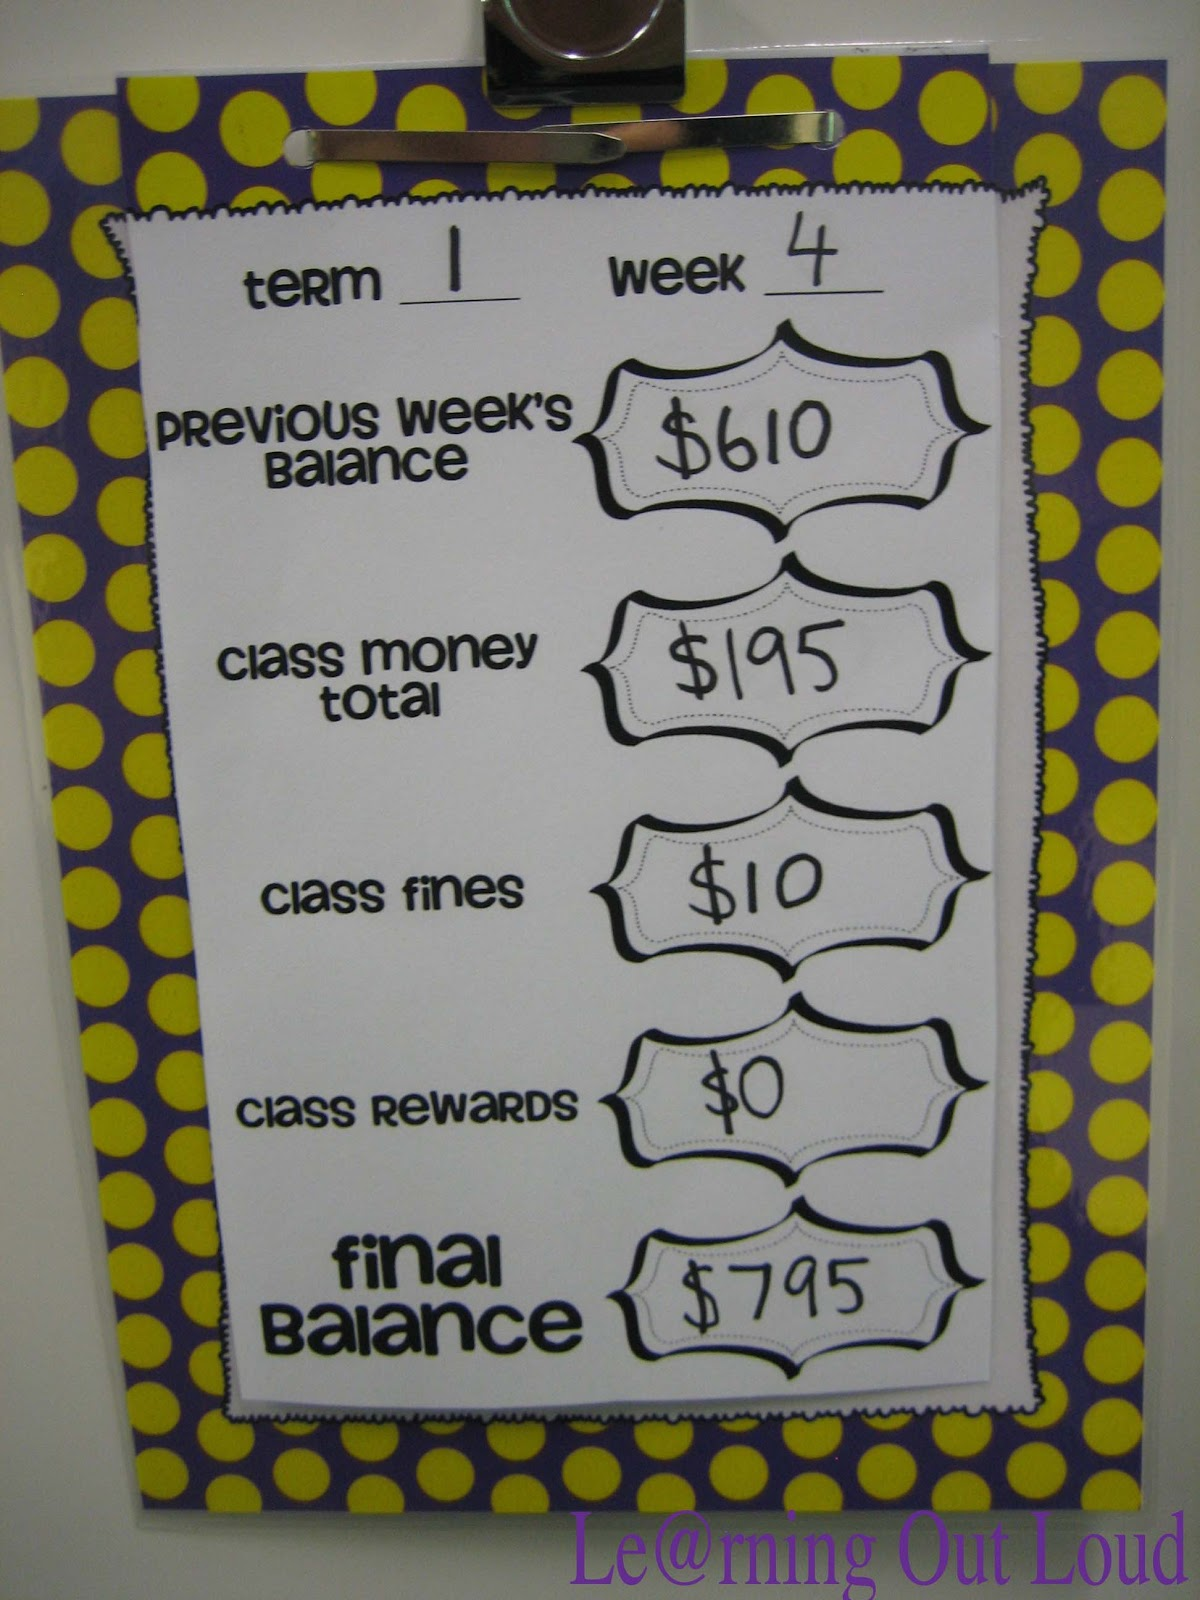 Classroom Reward Ideas That Don T Cost Money ~ Le rning out loud reward kids with money but it won t